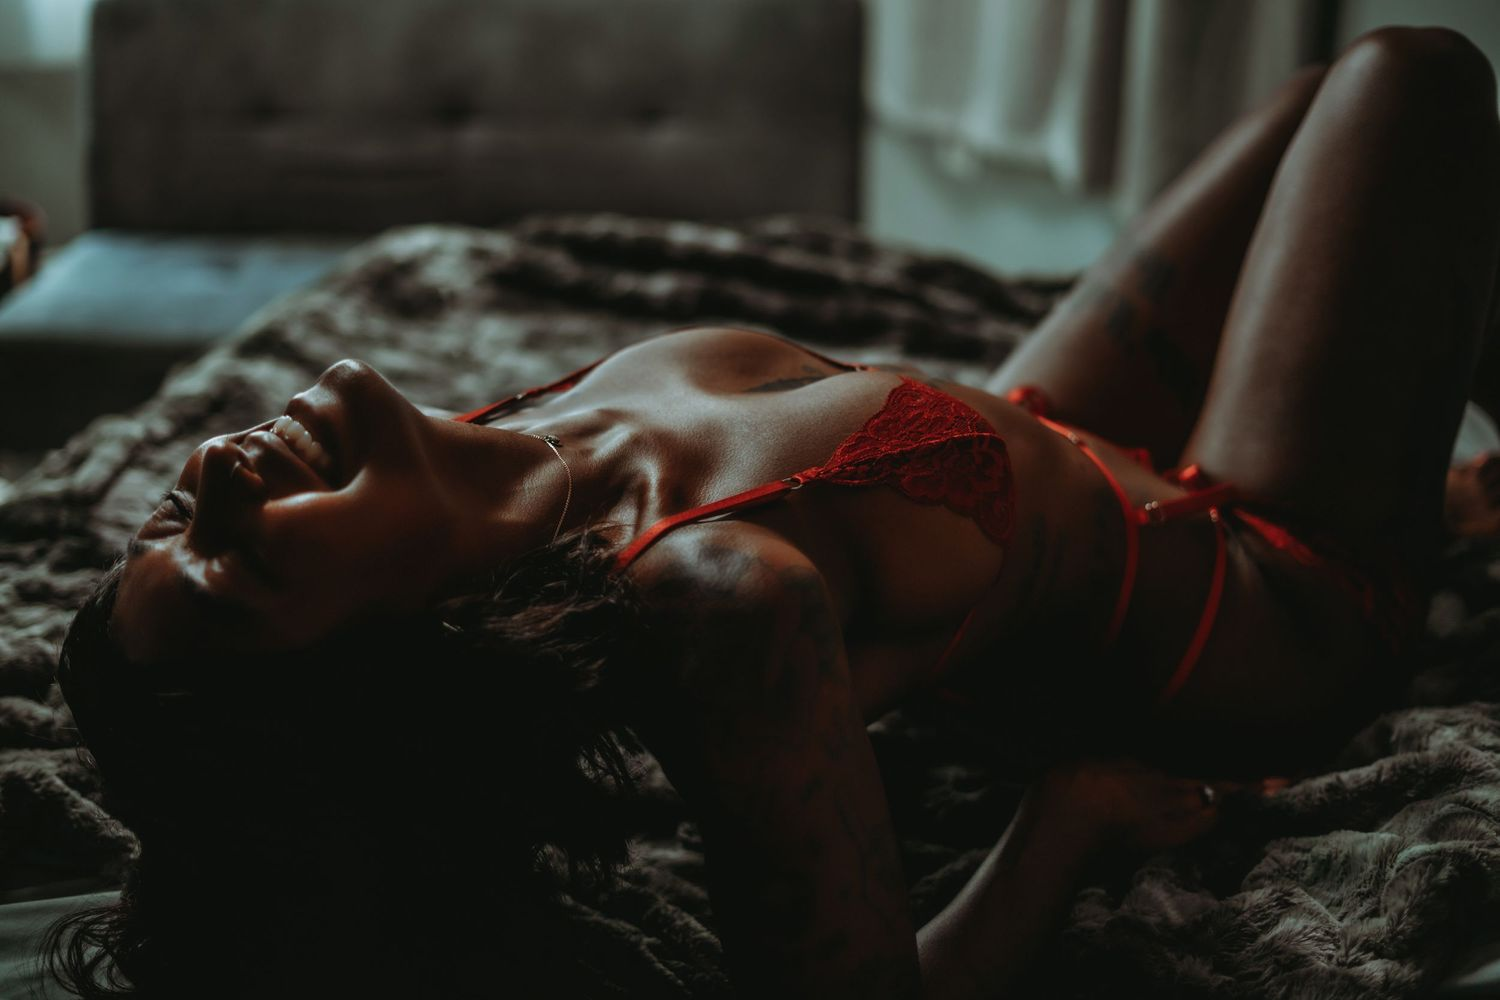 dark skinned woman arching her back on a bed and grinning, wearing red lingerie set